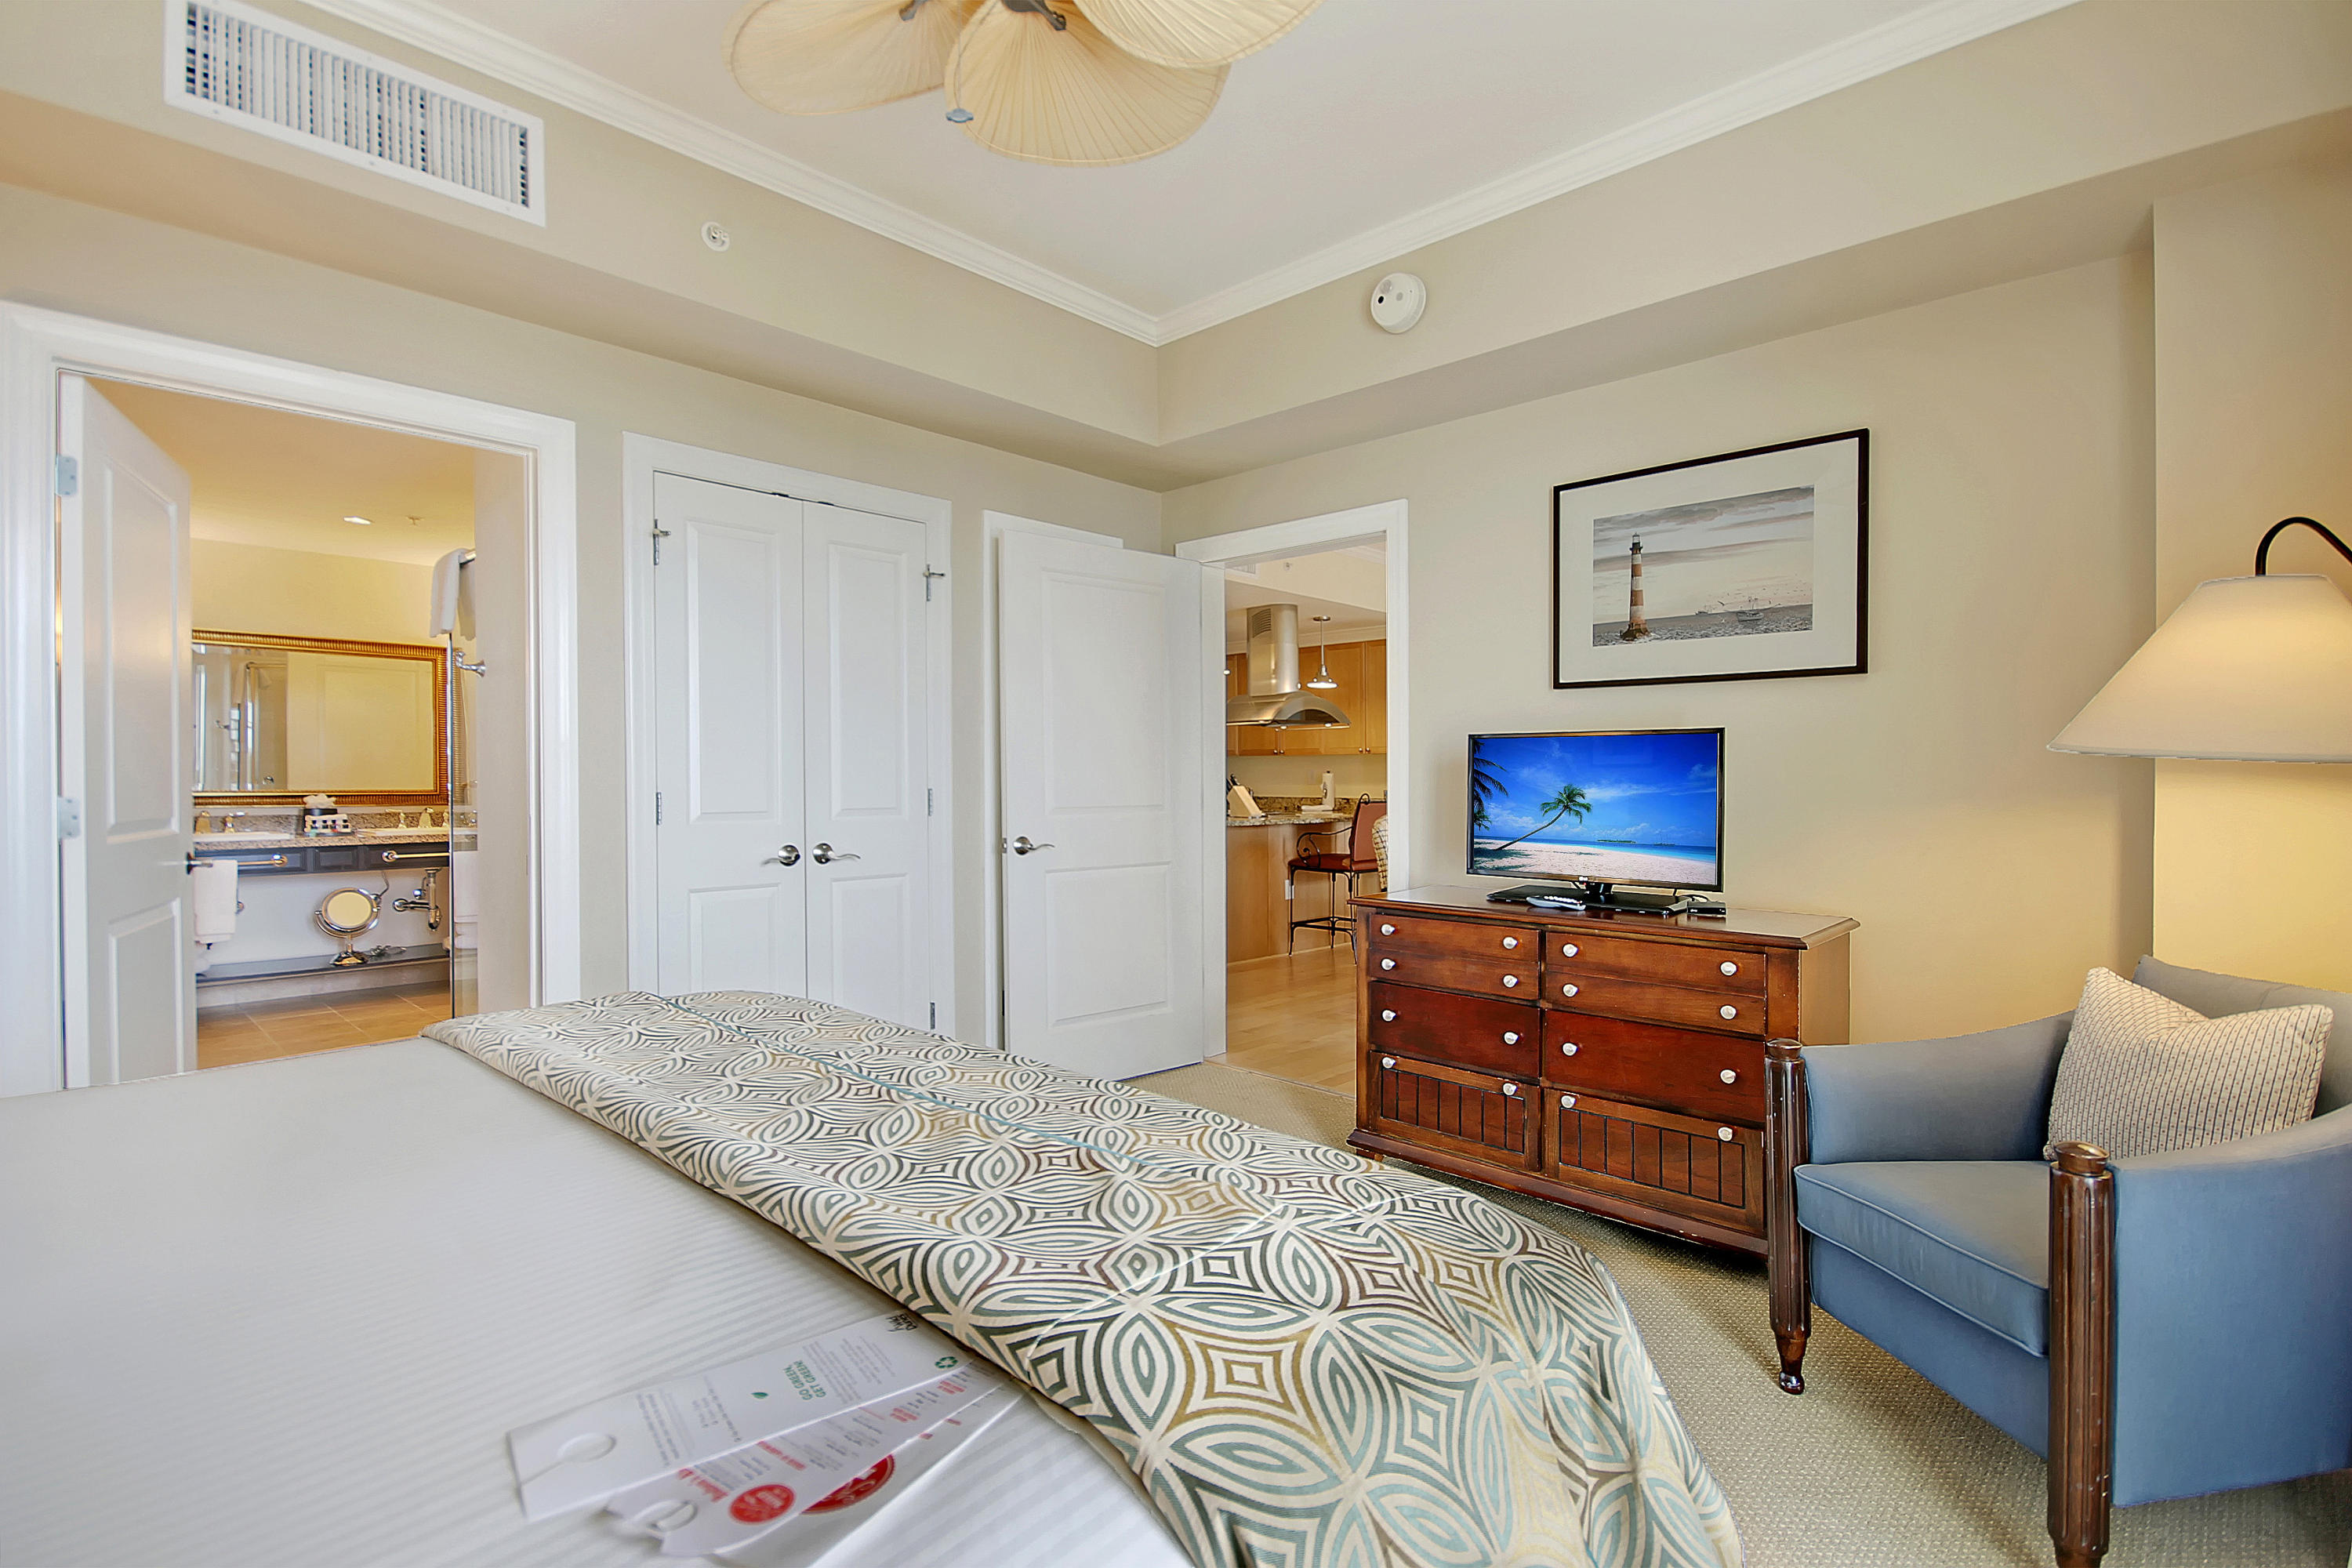 Wild Dunes Homes For Sale - 415/417-B The Village At Wild Dunes, Isle of Palms, SC - 4